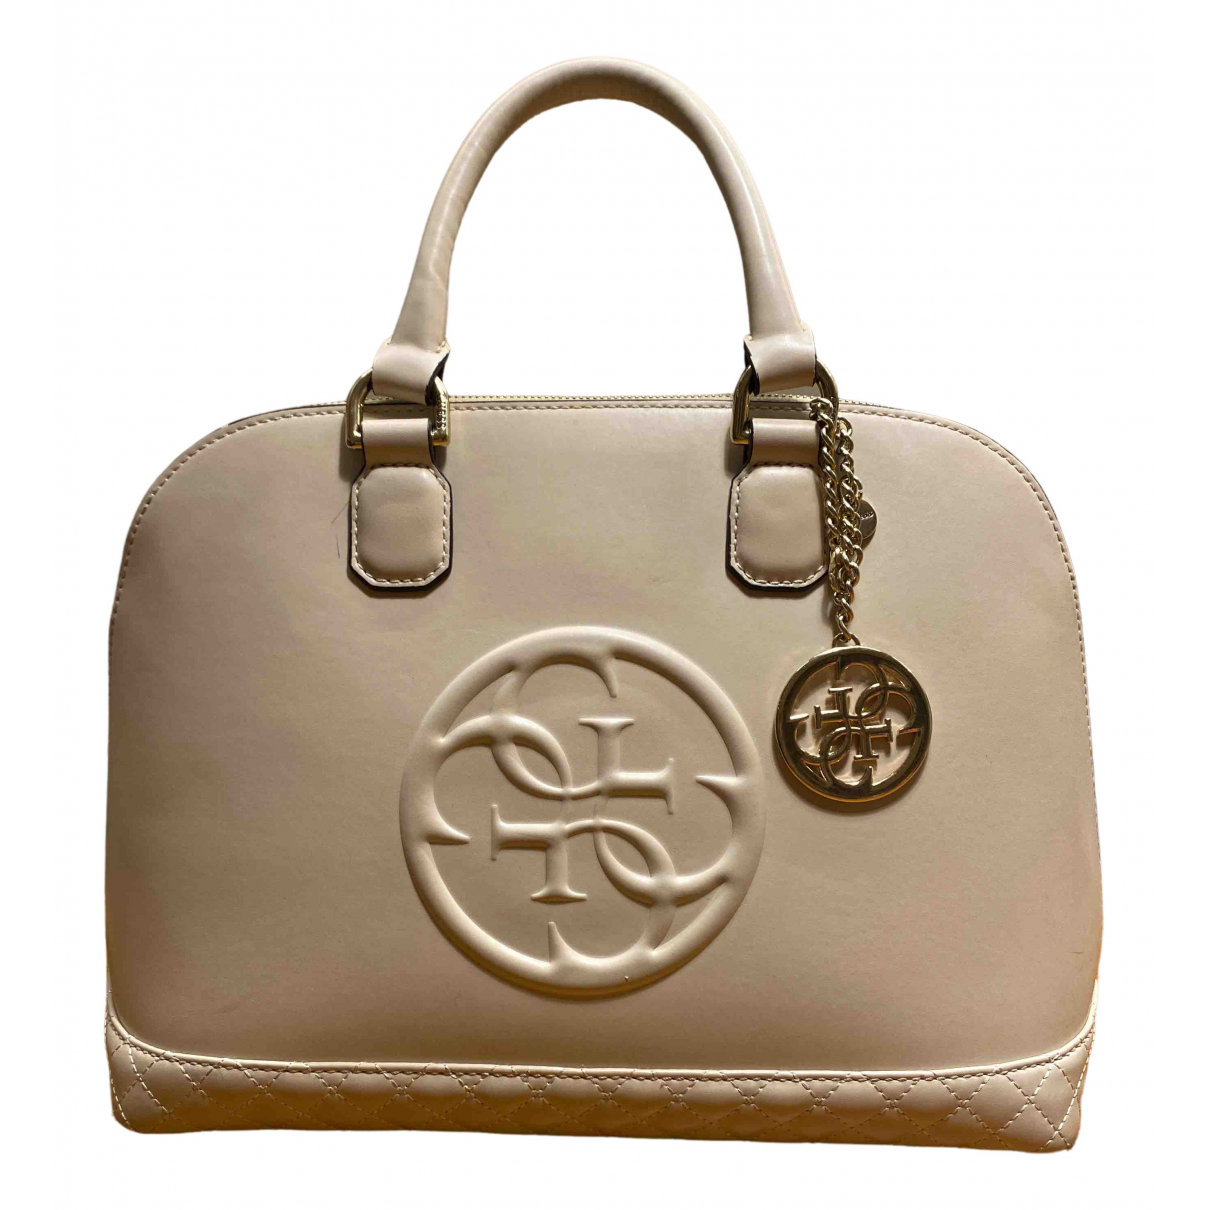 Guess \N Handtasche in  Beige Polyester